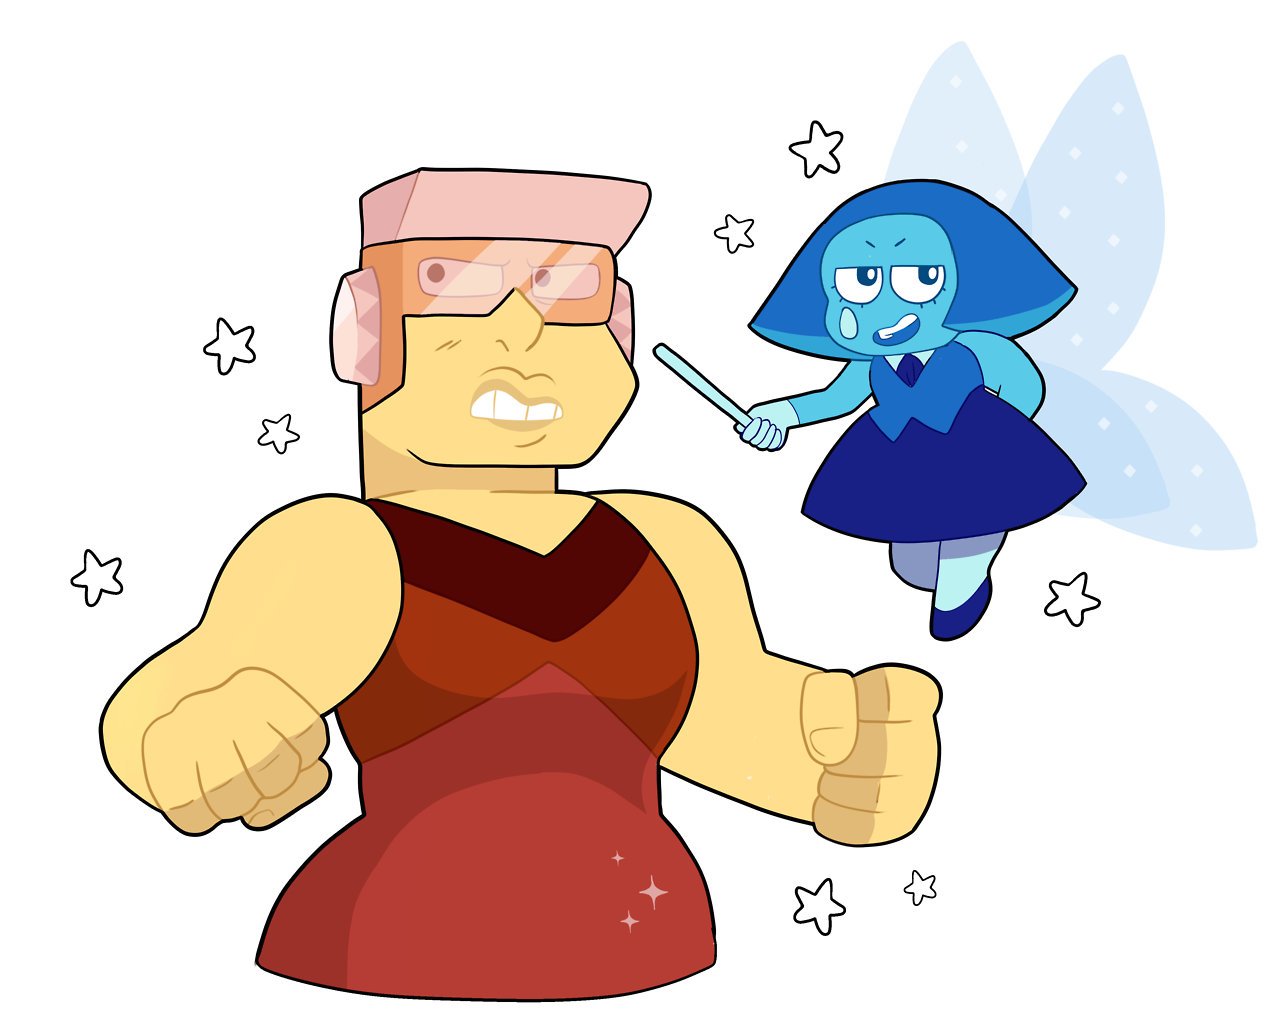 ah yes the new gems, bloc of cheese and water droplet Youtube